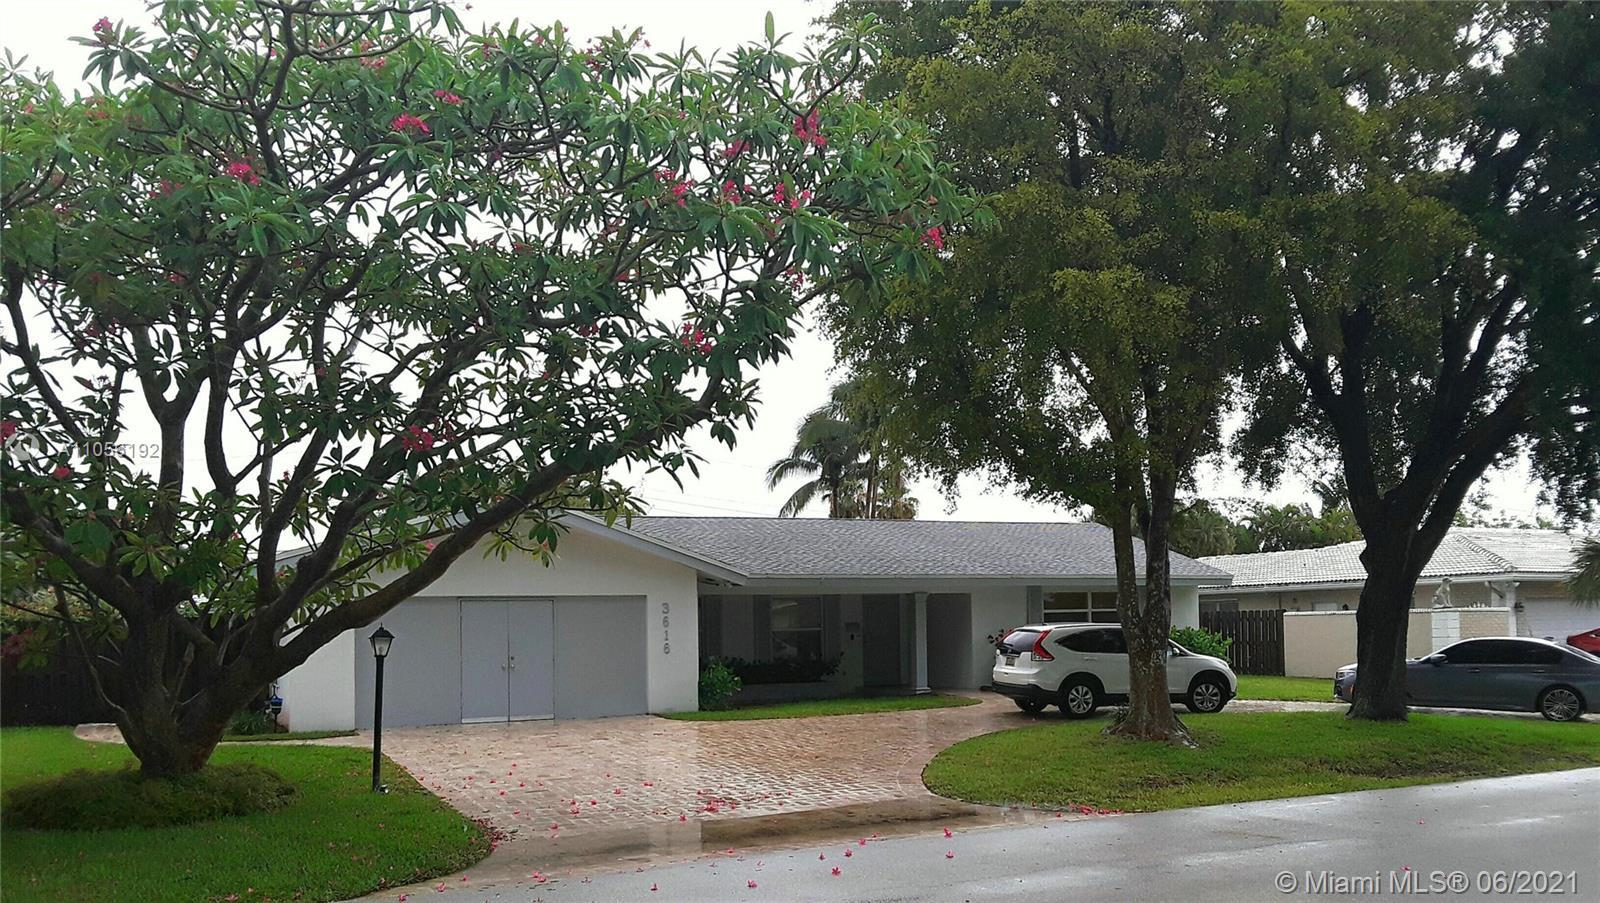 """""""CORAL RIDGE COUNTRY CLUB""""  VERY LARGE 3/2 POOL HOME LOCATED ON A QUIET STREET. SHOWS IN GOOD CONDIT"""